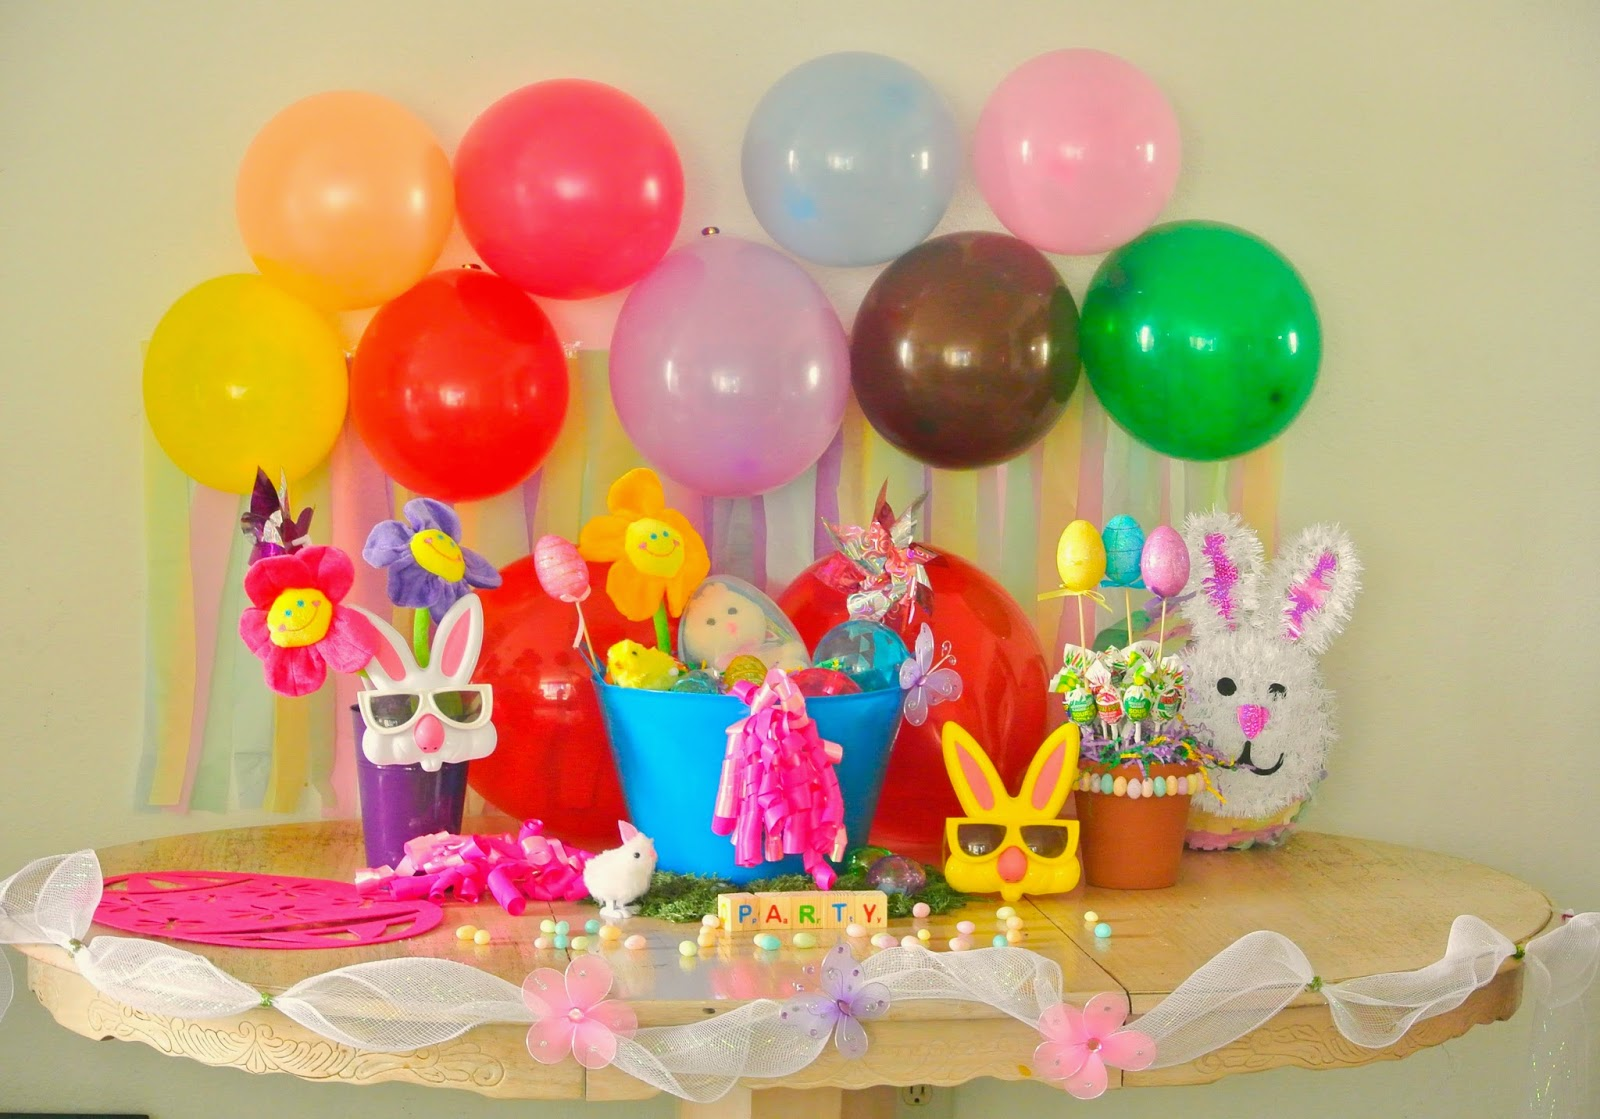 Balloons, party decor, Spring decor